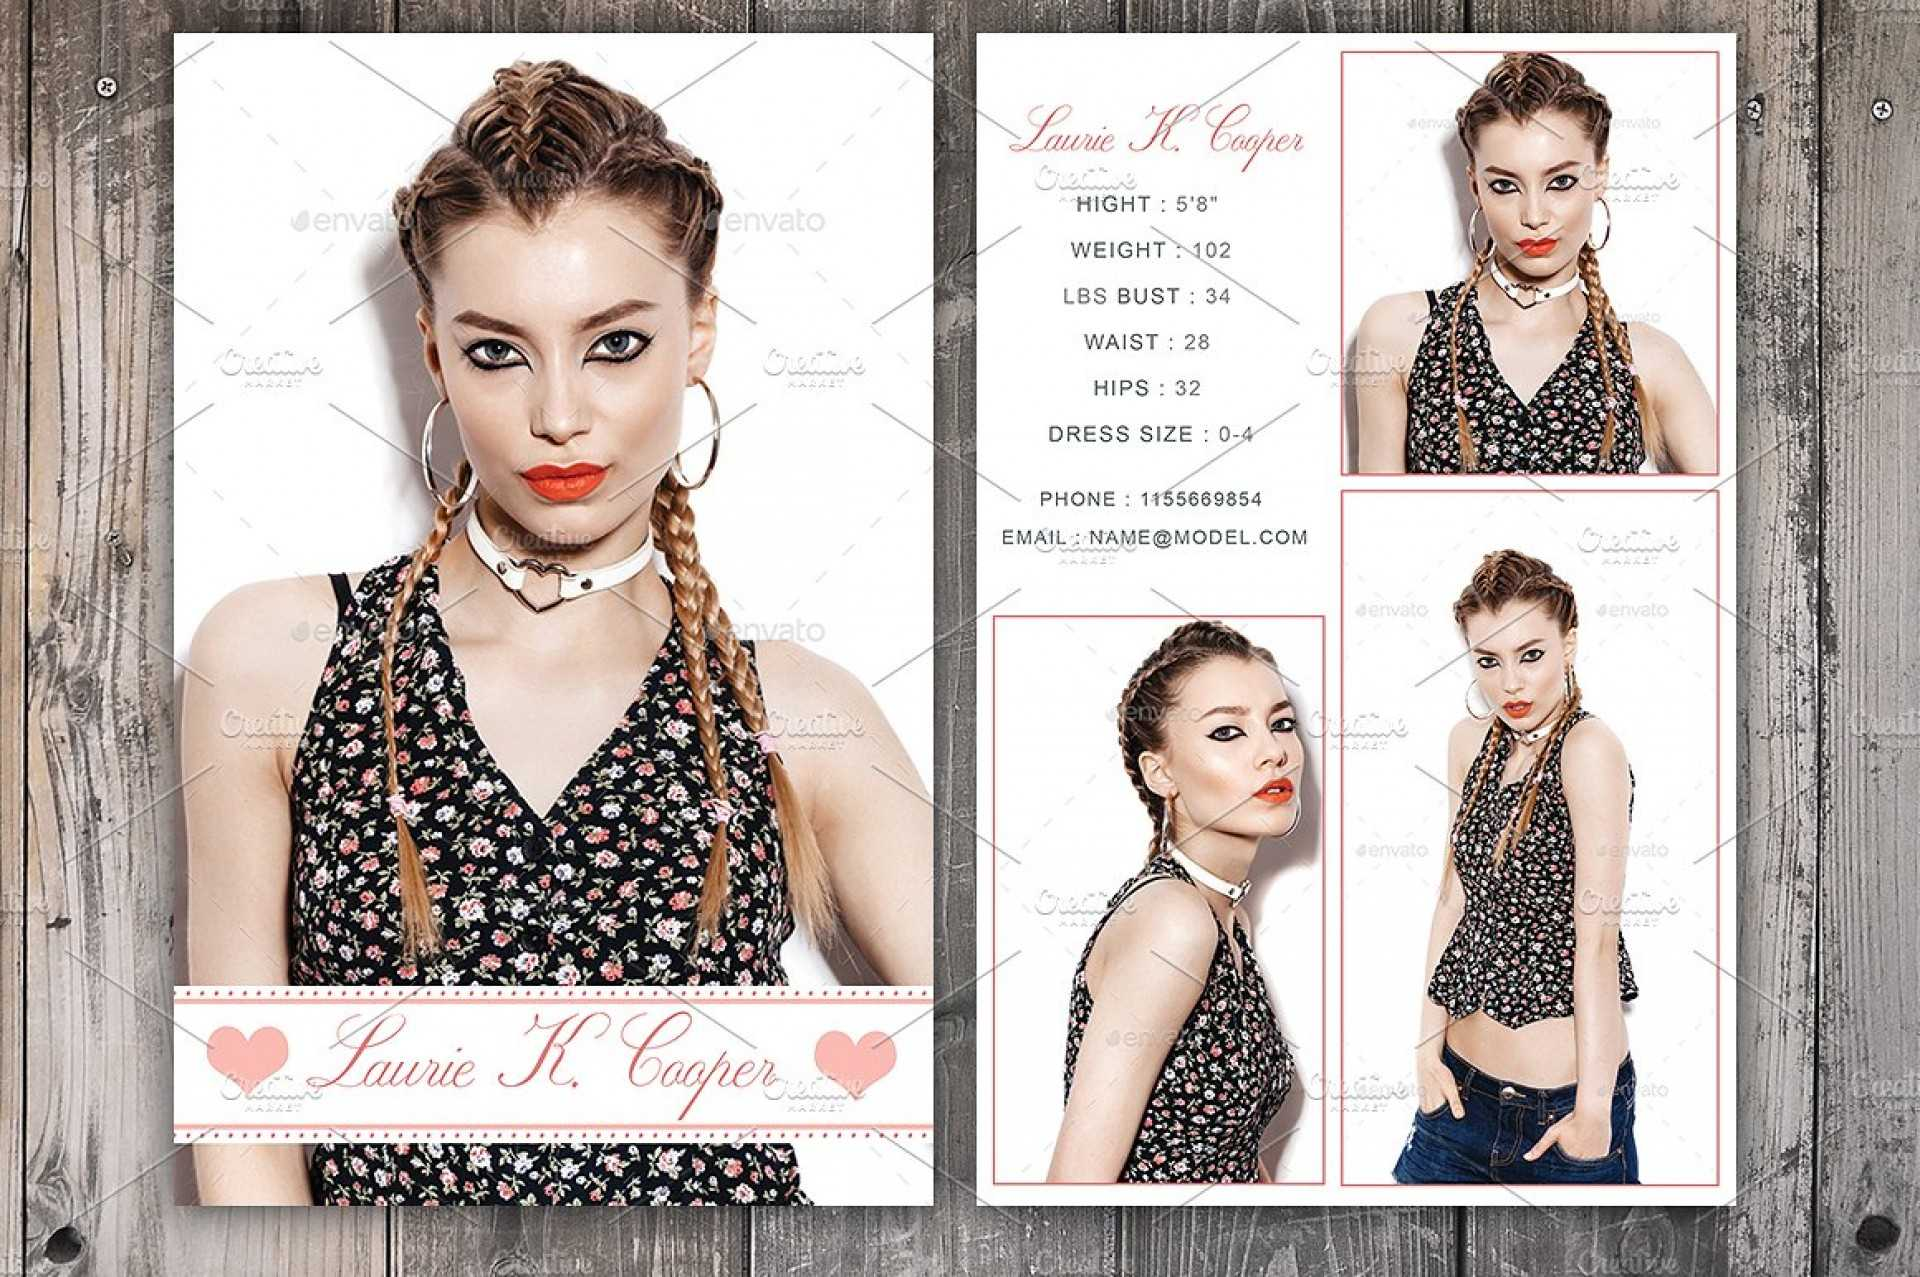 Free Model Comp Card Templates - C Punkt Throughout Free Model Comp Card Template